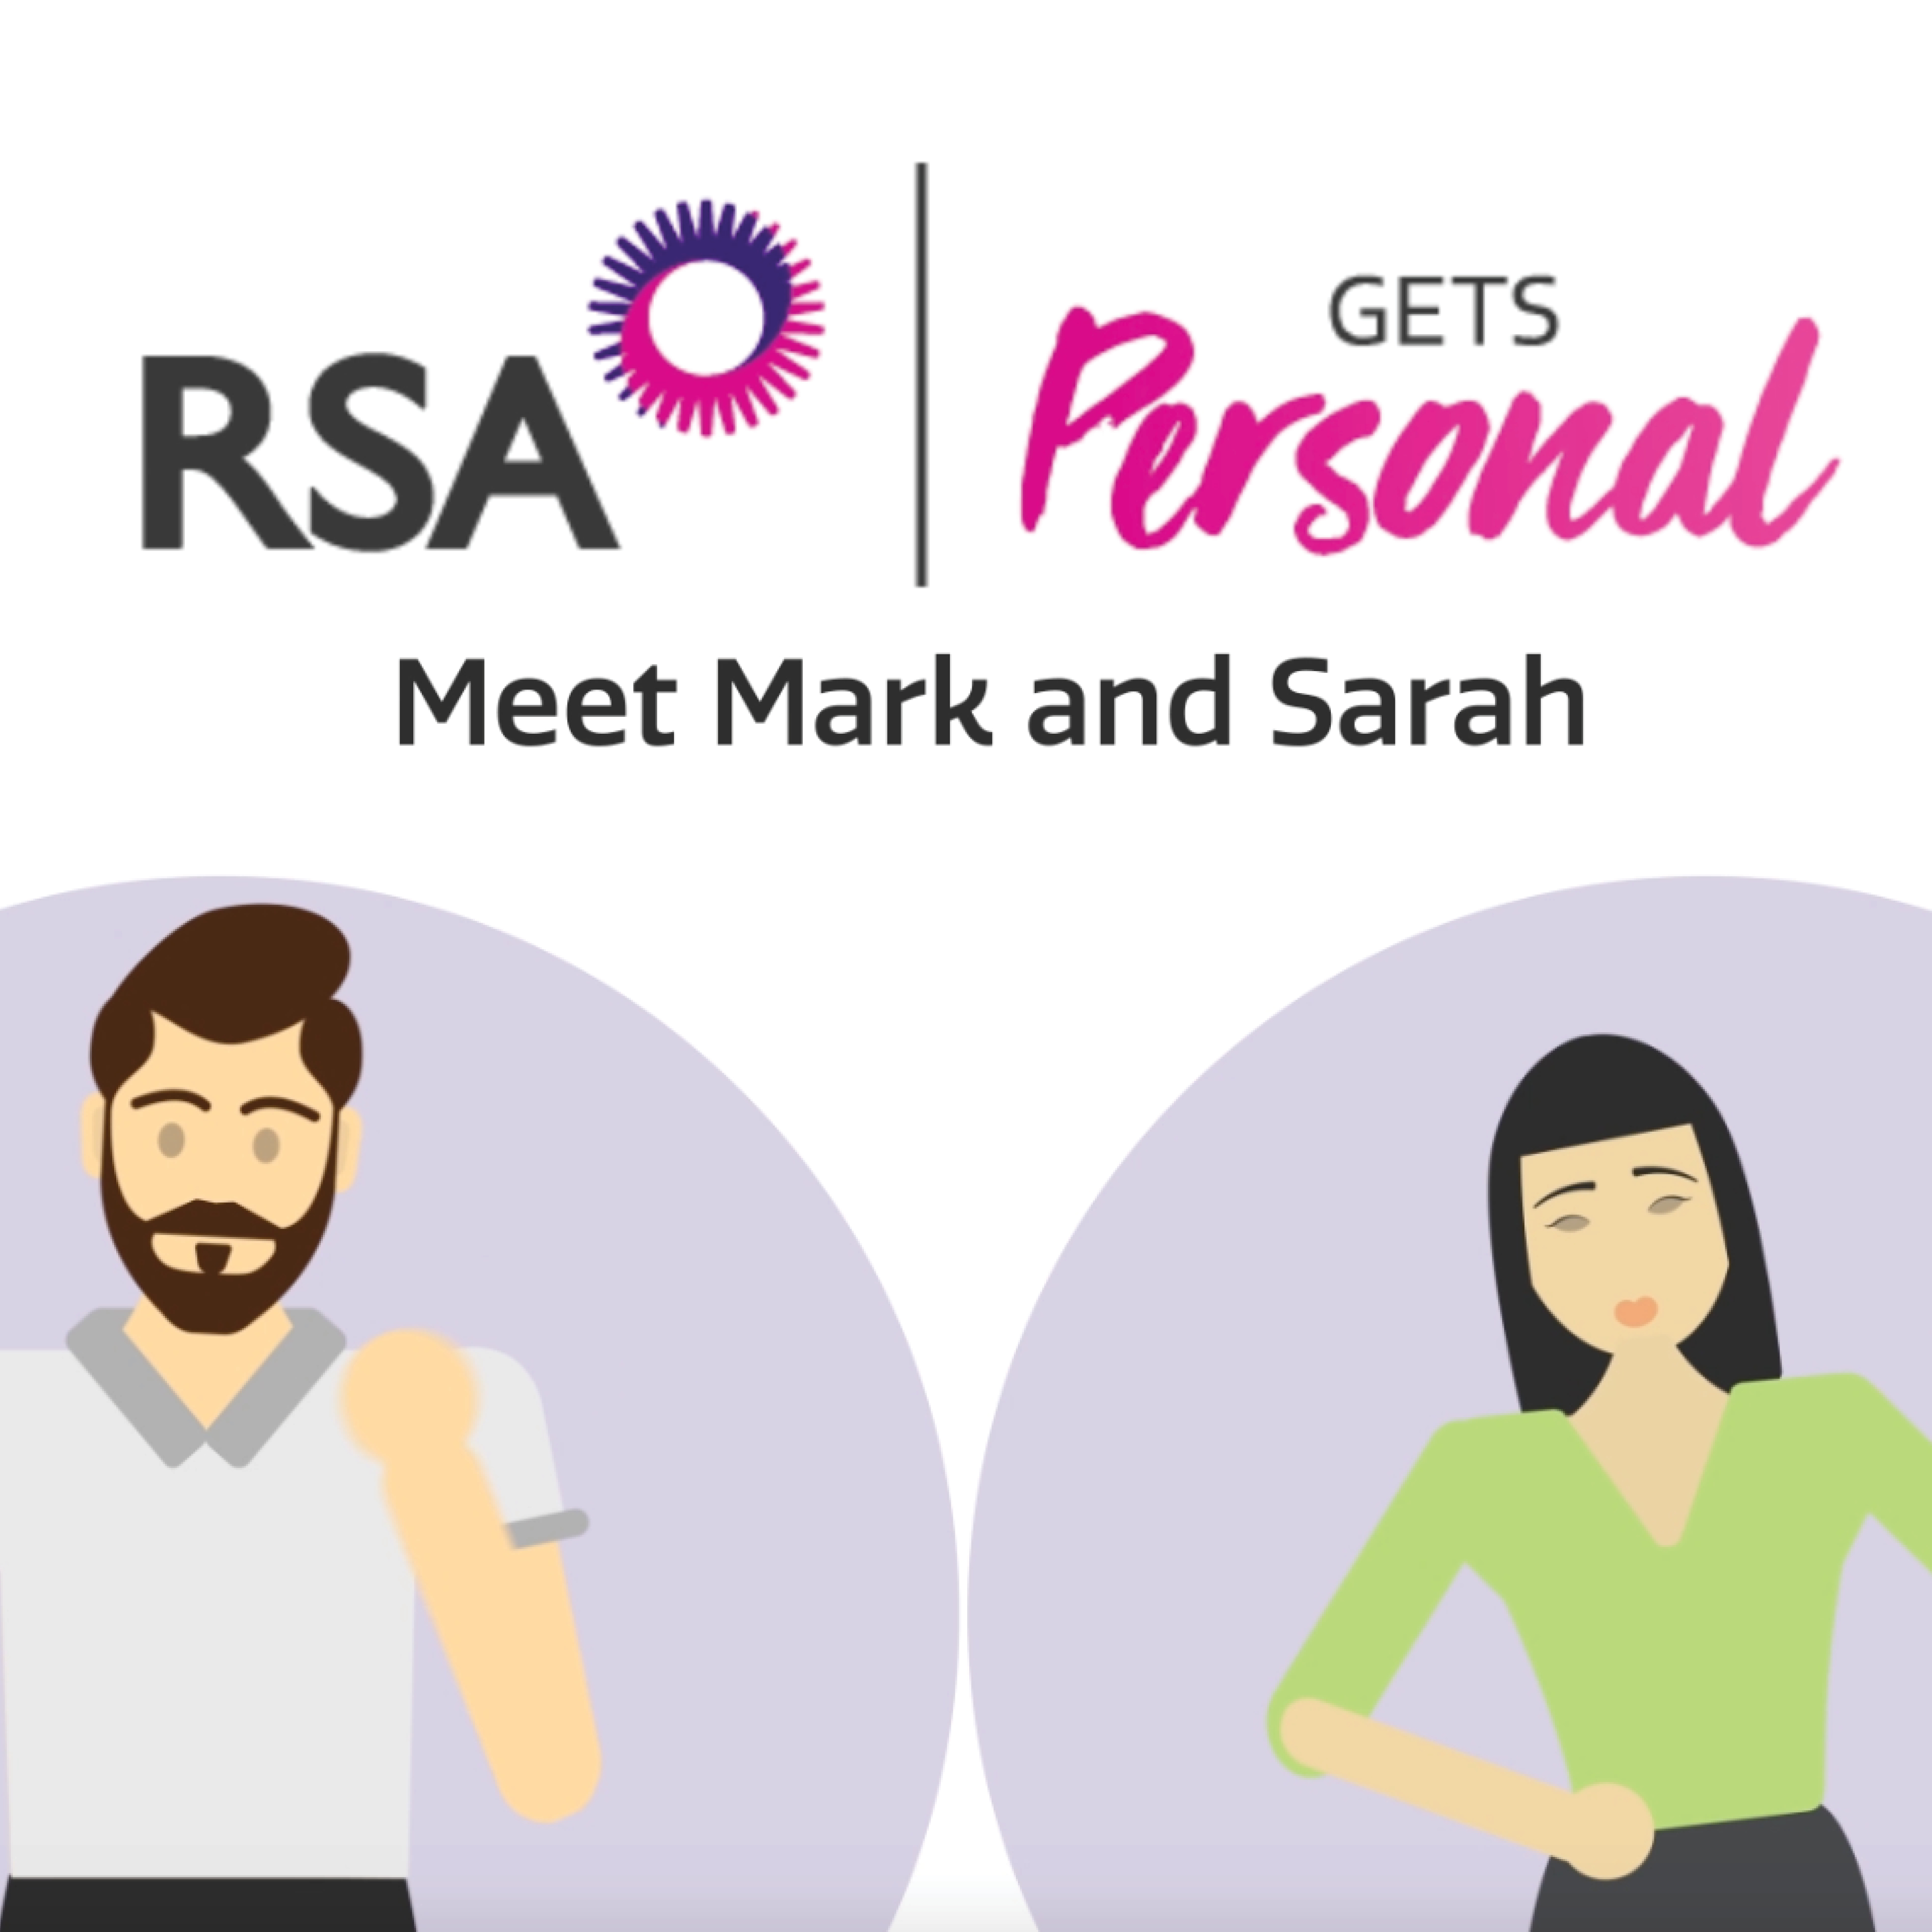 Rsa pulls away from the personal lines broker motor market - Rsa Pulls Away From The Personal Lines Broker Motor Market 7